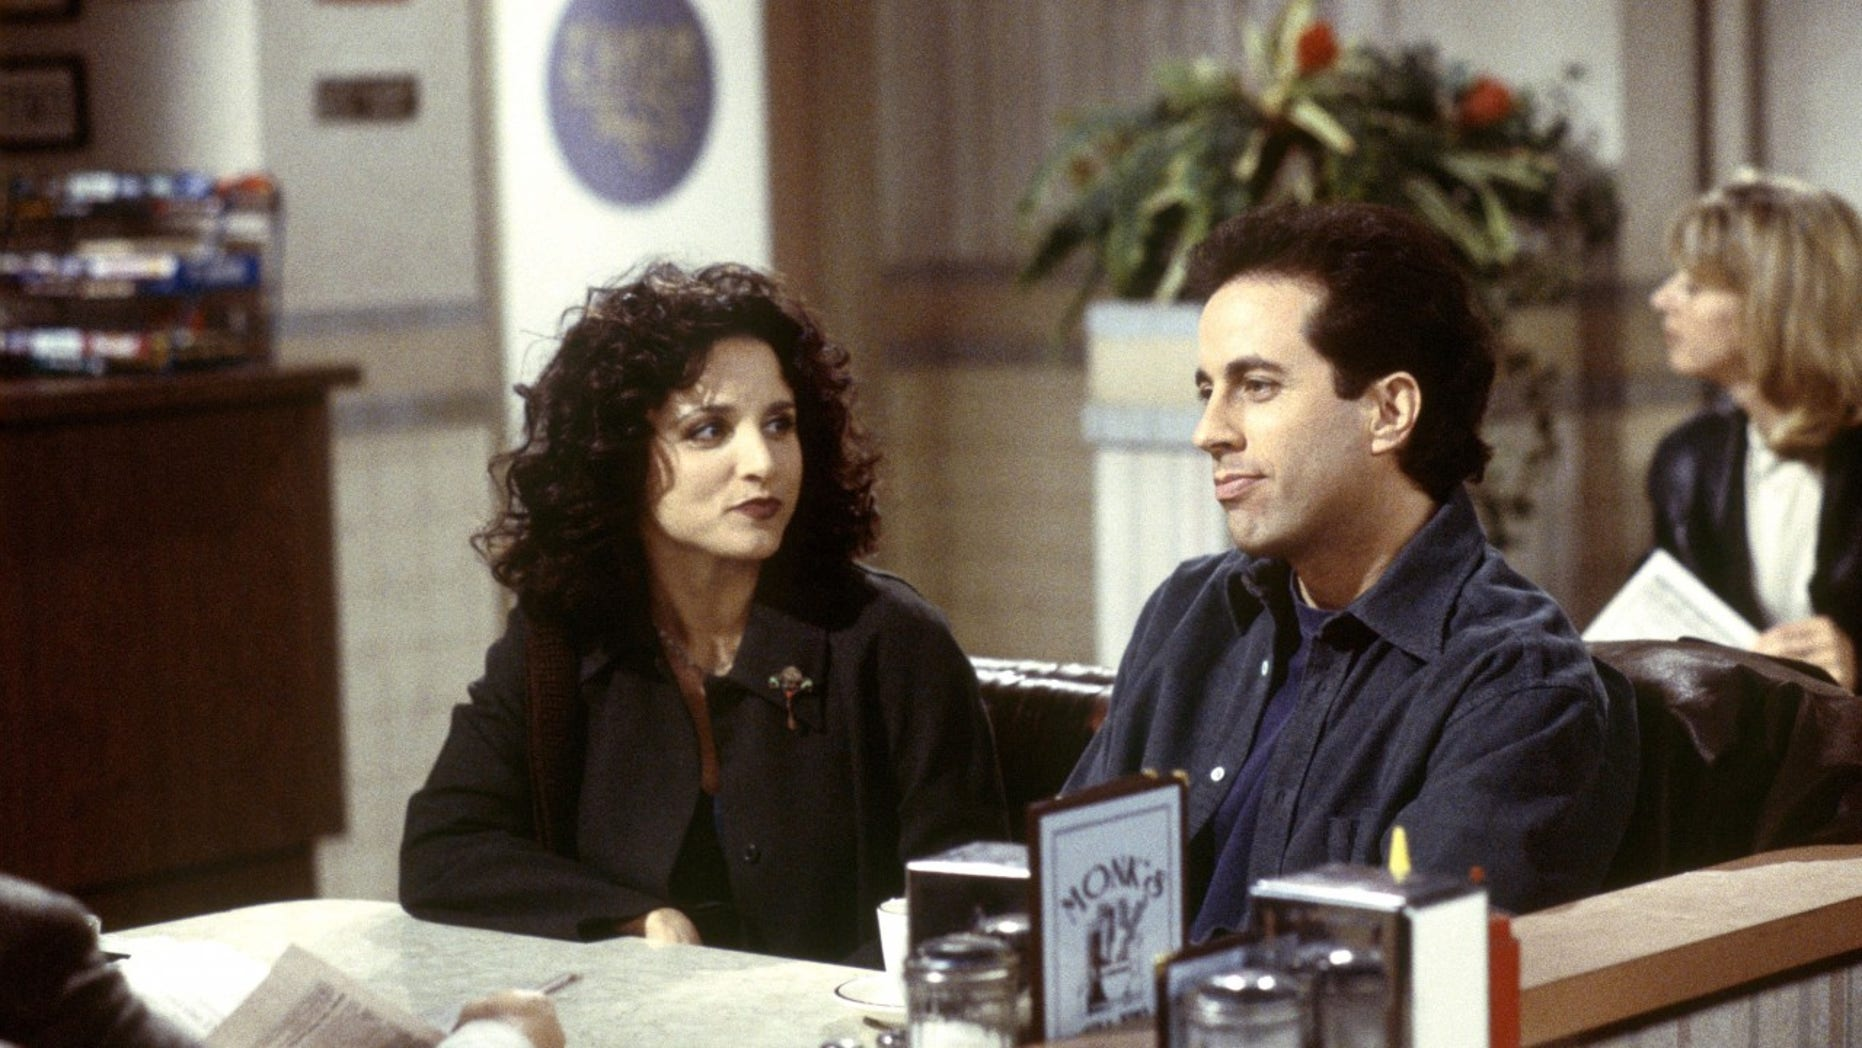 Julia Louis-Dreyfus, left, as Elaine Benes and Jerry Seinfeld, right,as himself on Seinfeld.